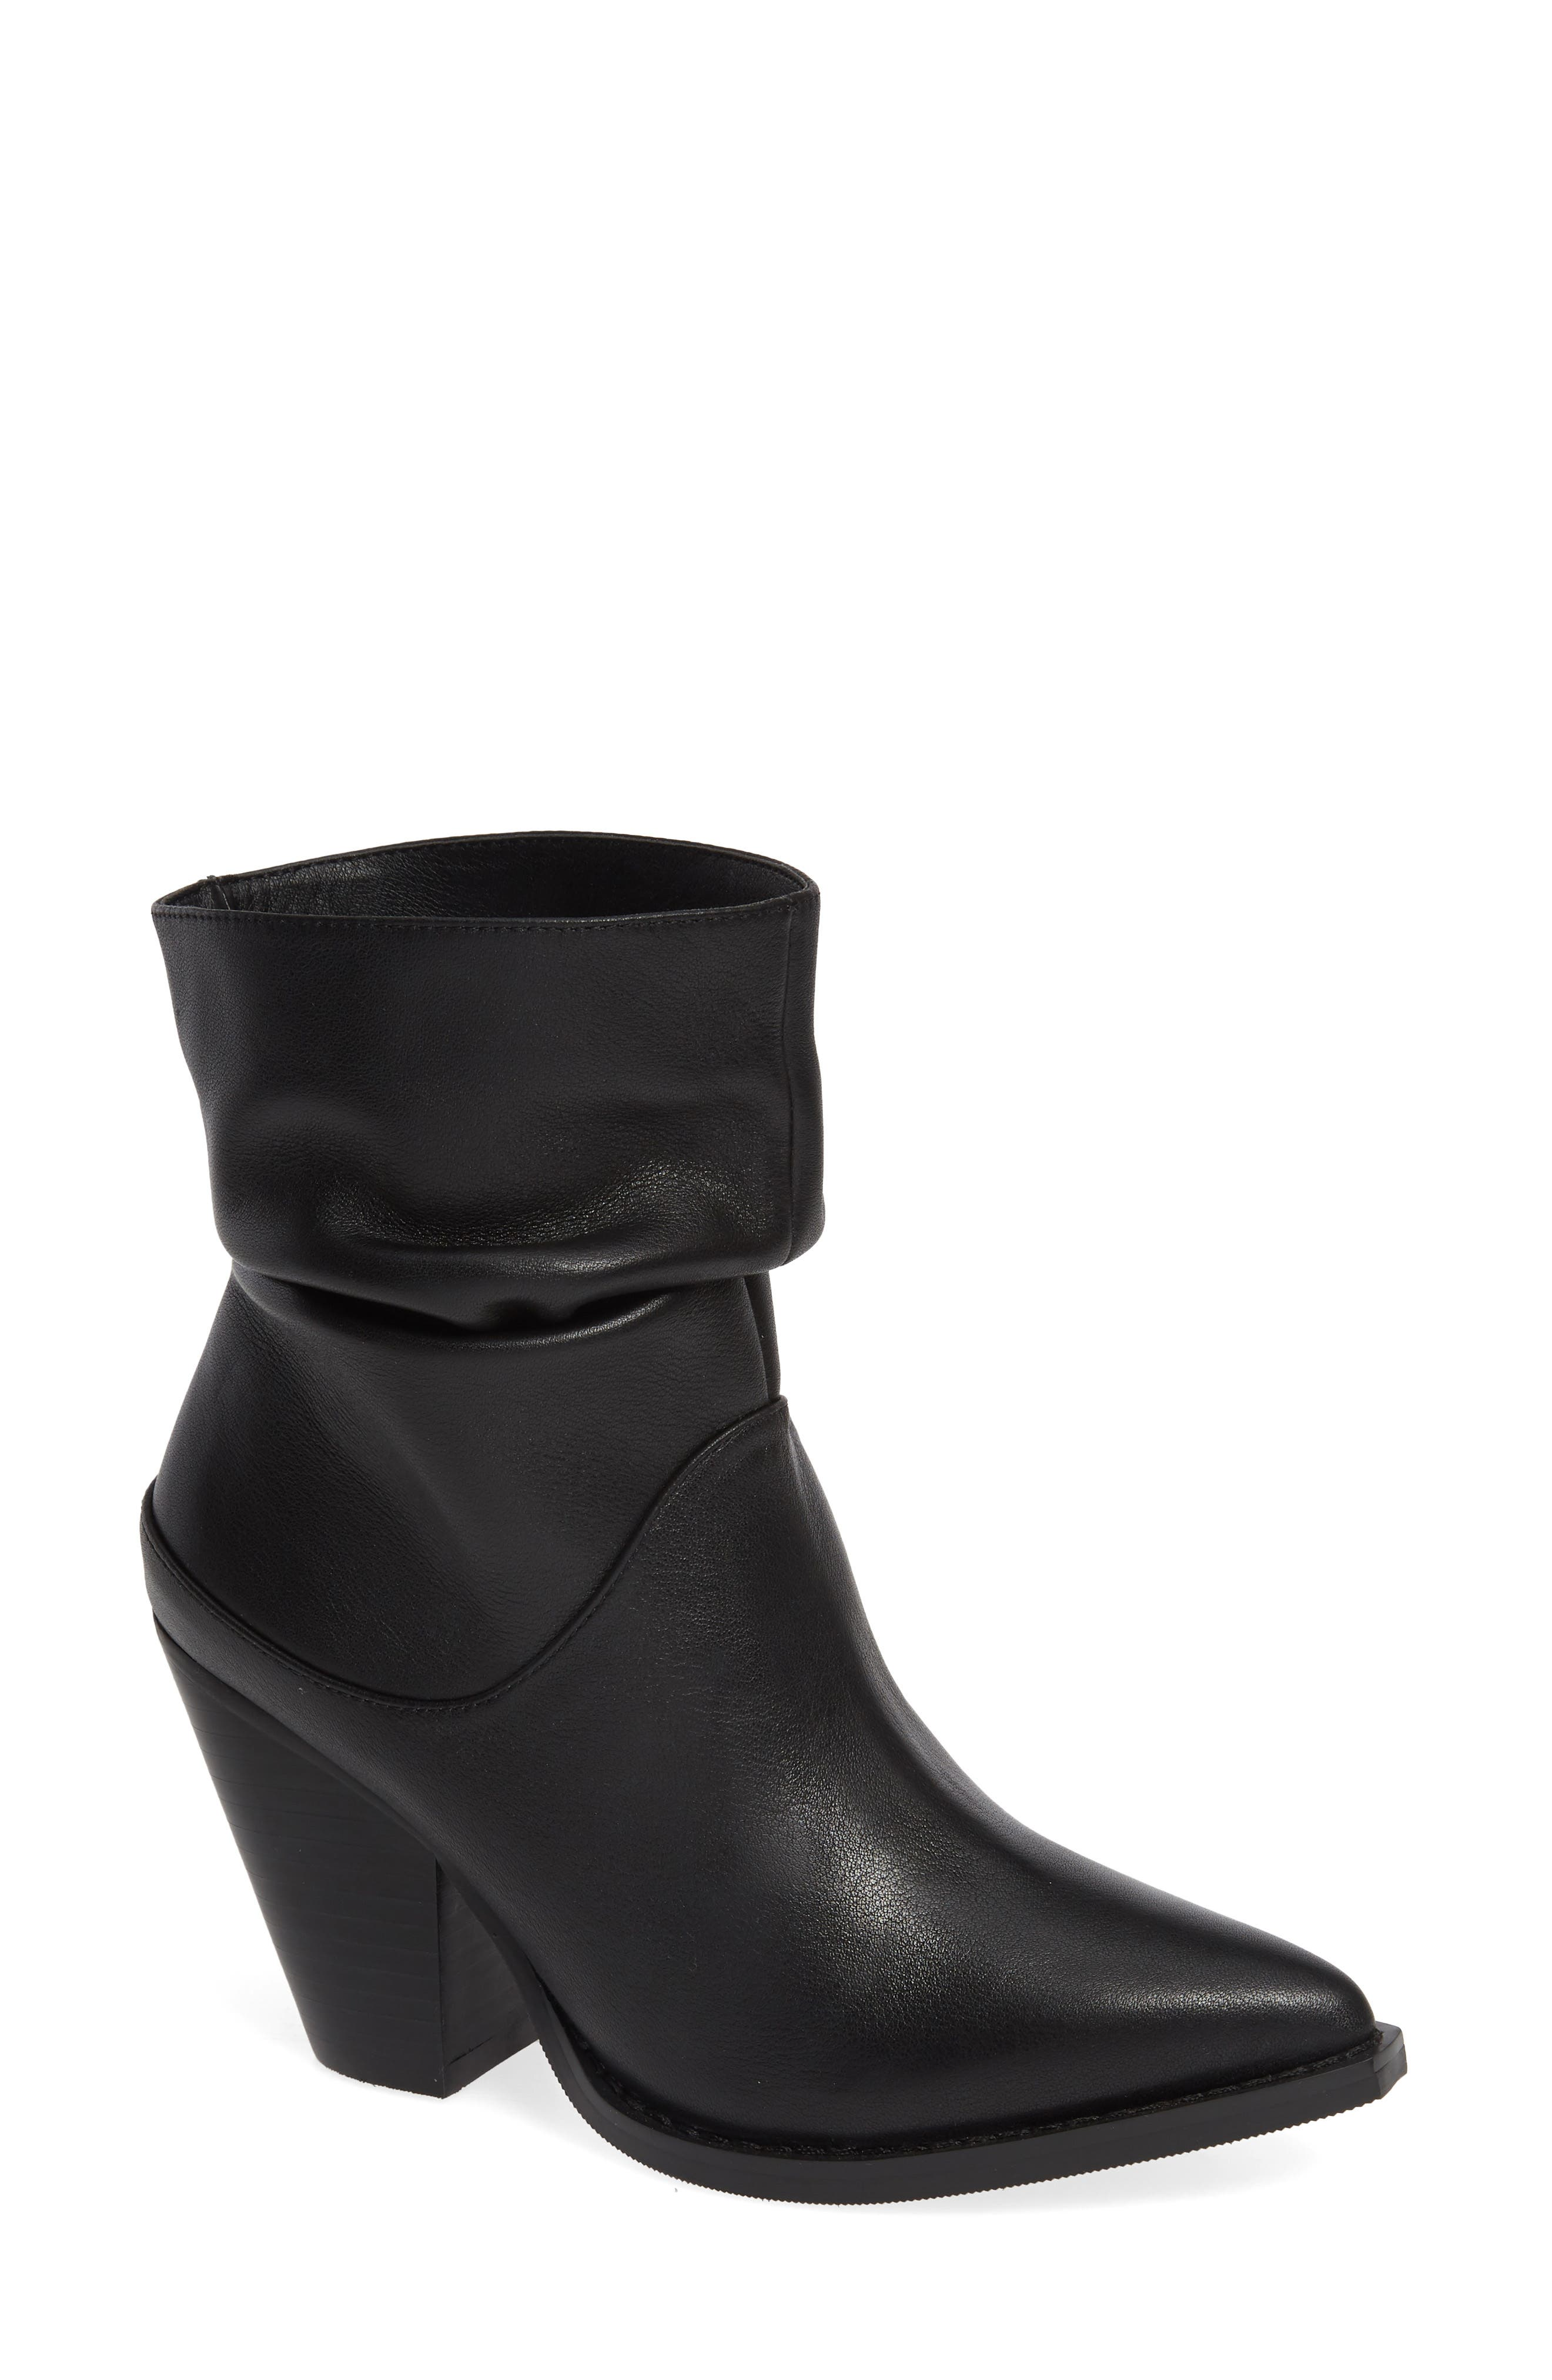 Jane And The Shoe Lilian Bootie- Black